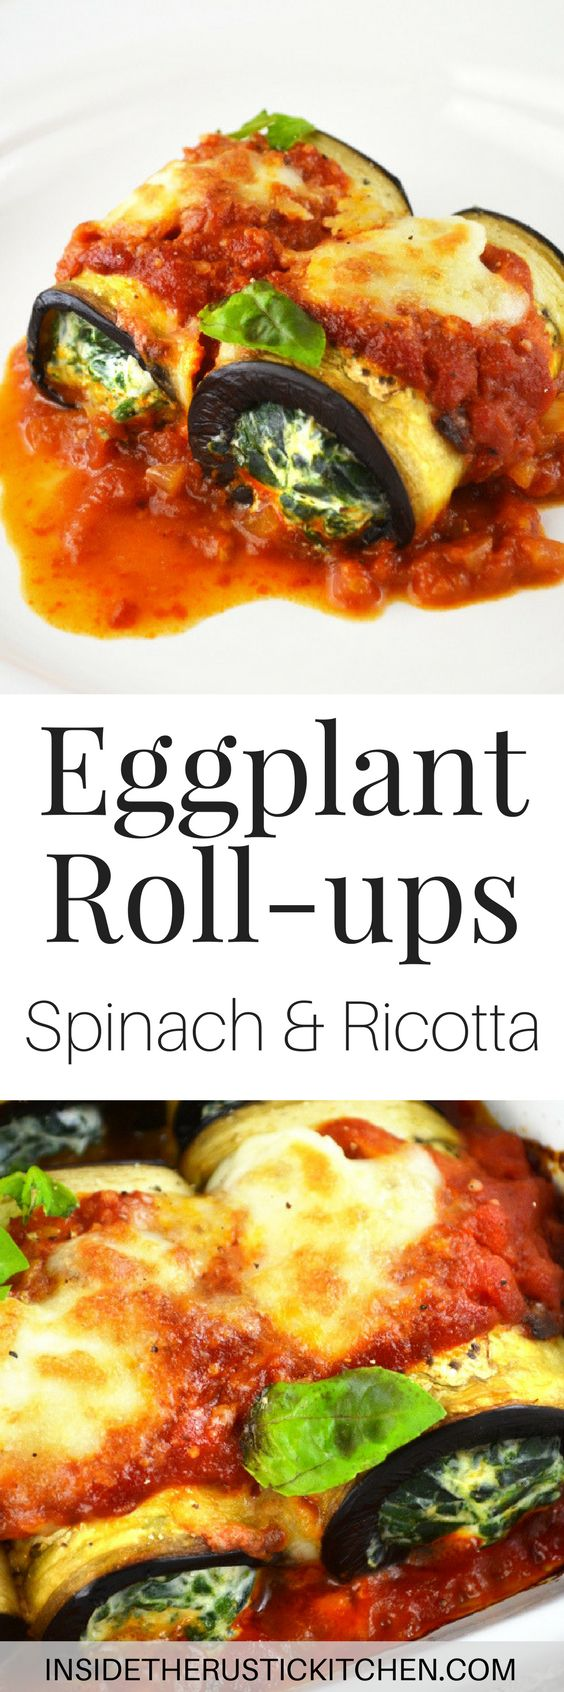 Try these Eggplant Roll-ups stuffed with spinach and ricotta for a lighter and absolutely delicious dinner.